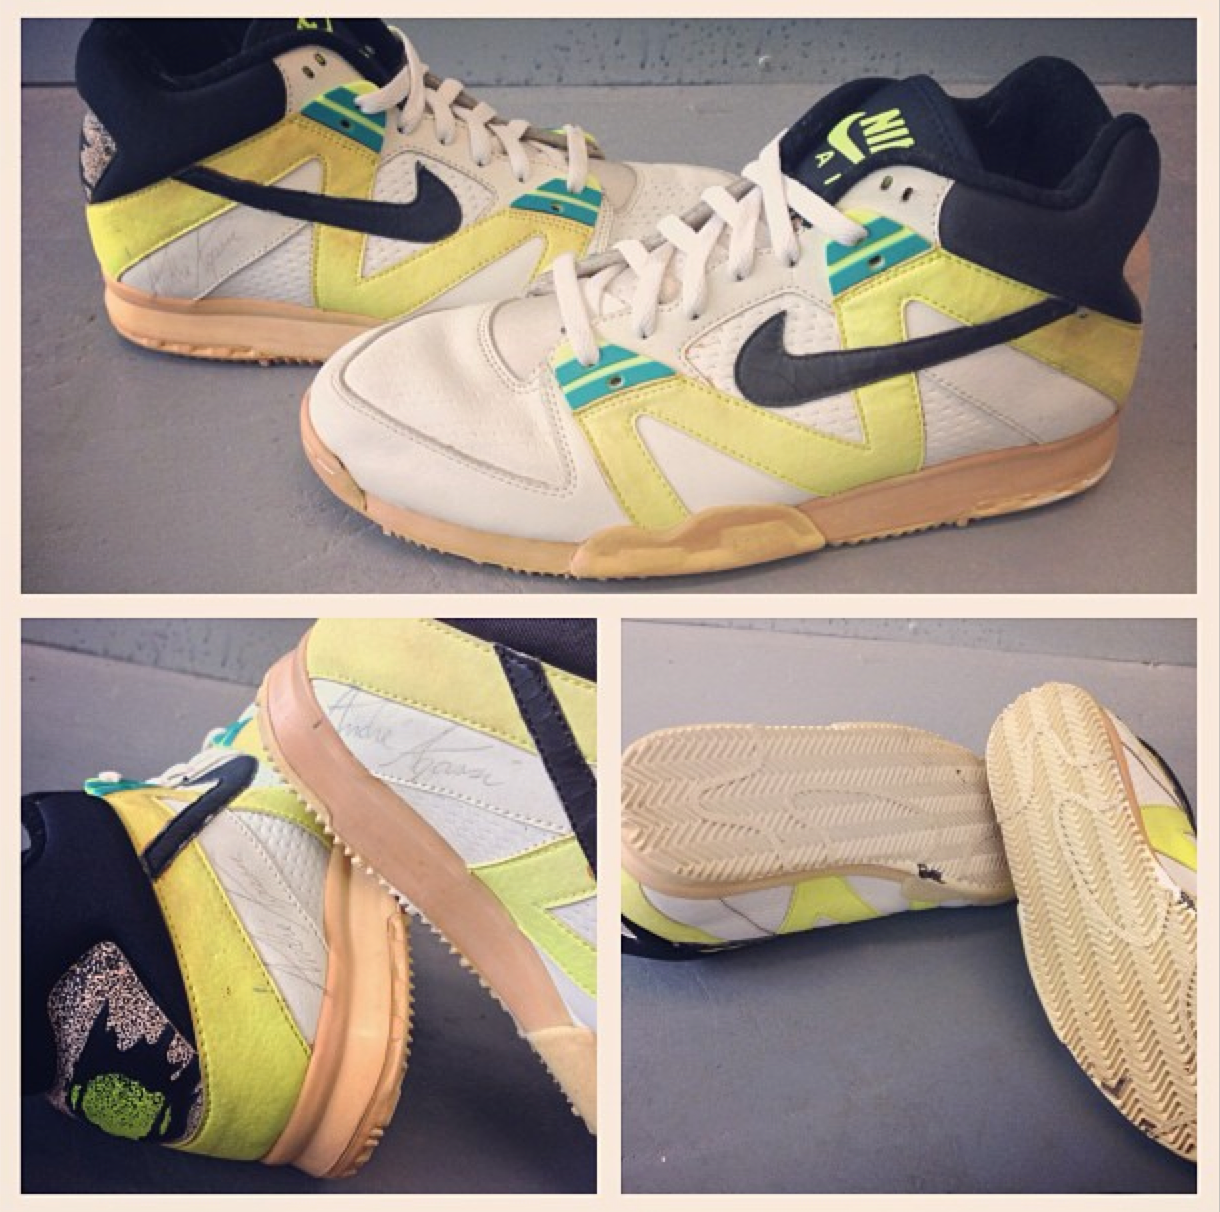 designer fashion 41626 304ae Nike Air Tech Challenge III Andre Agassi French Open player edition (match  worn and signed from 1990!) Different midsole outsole from the regular